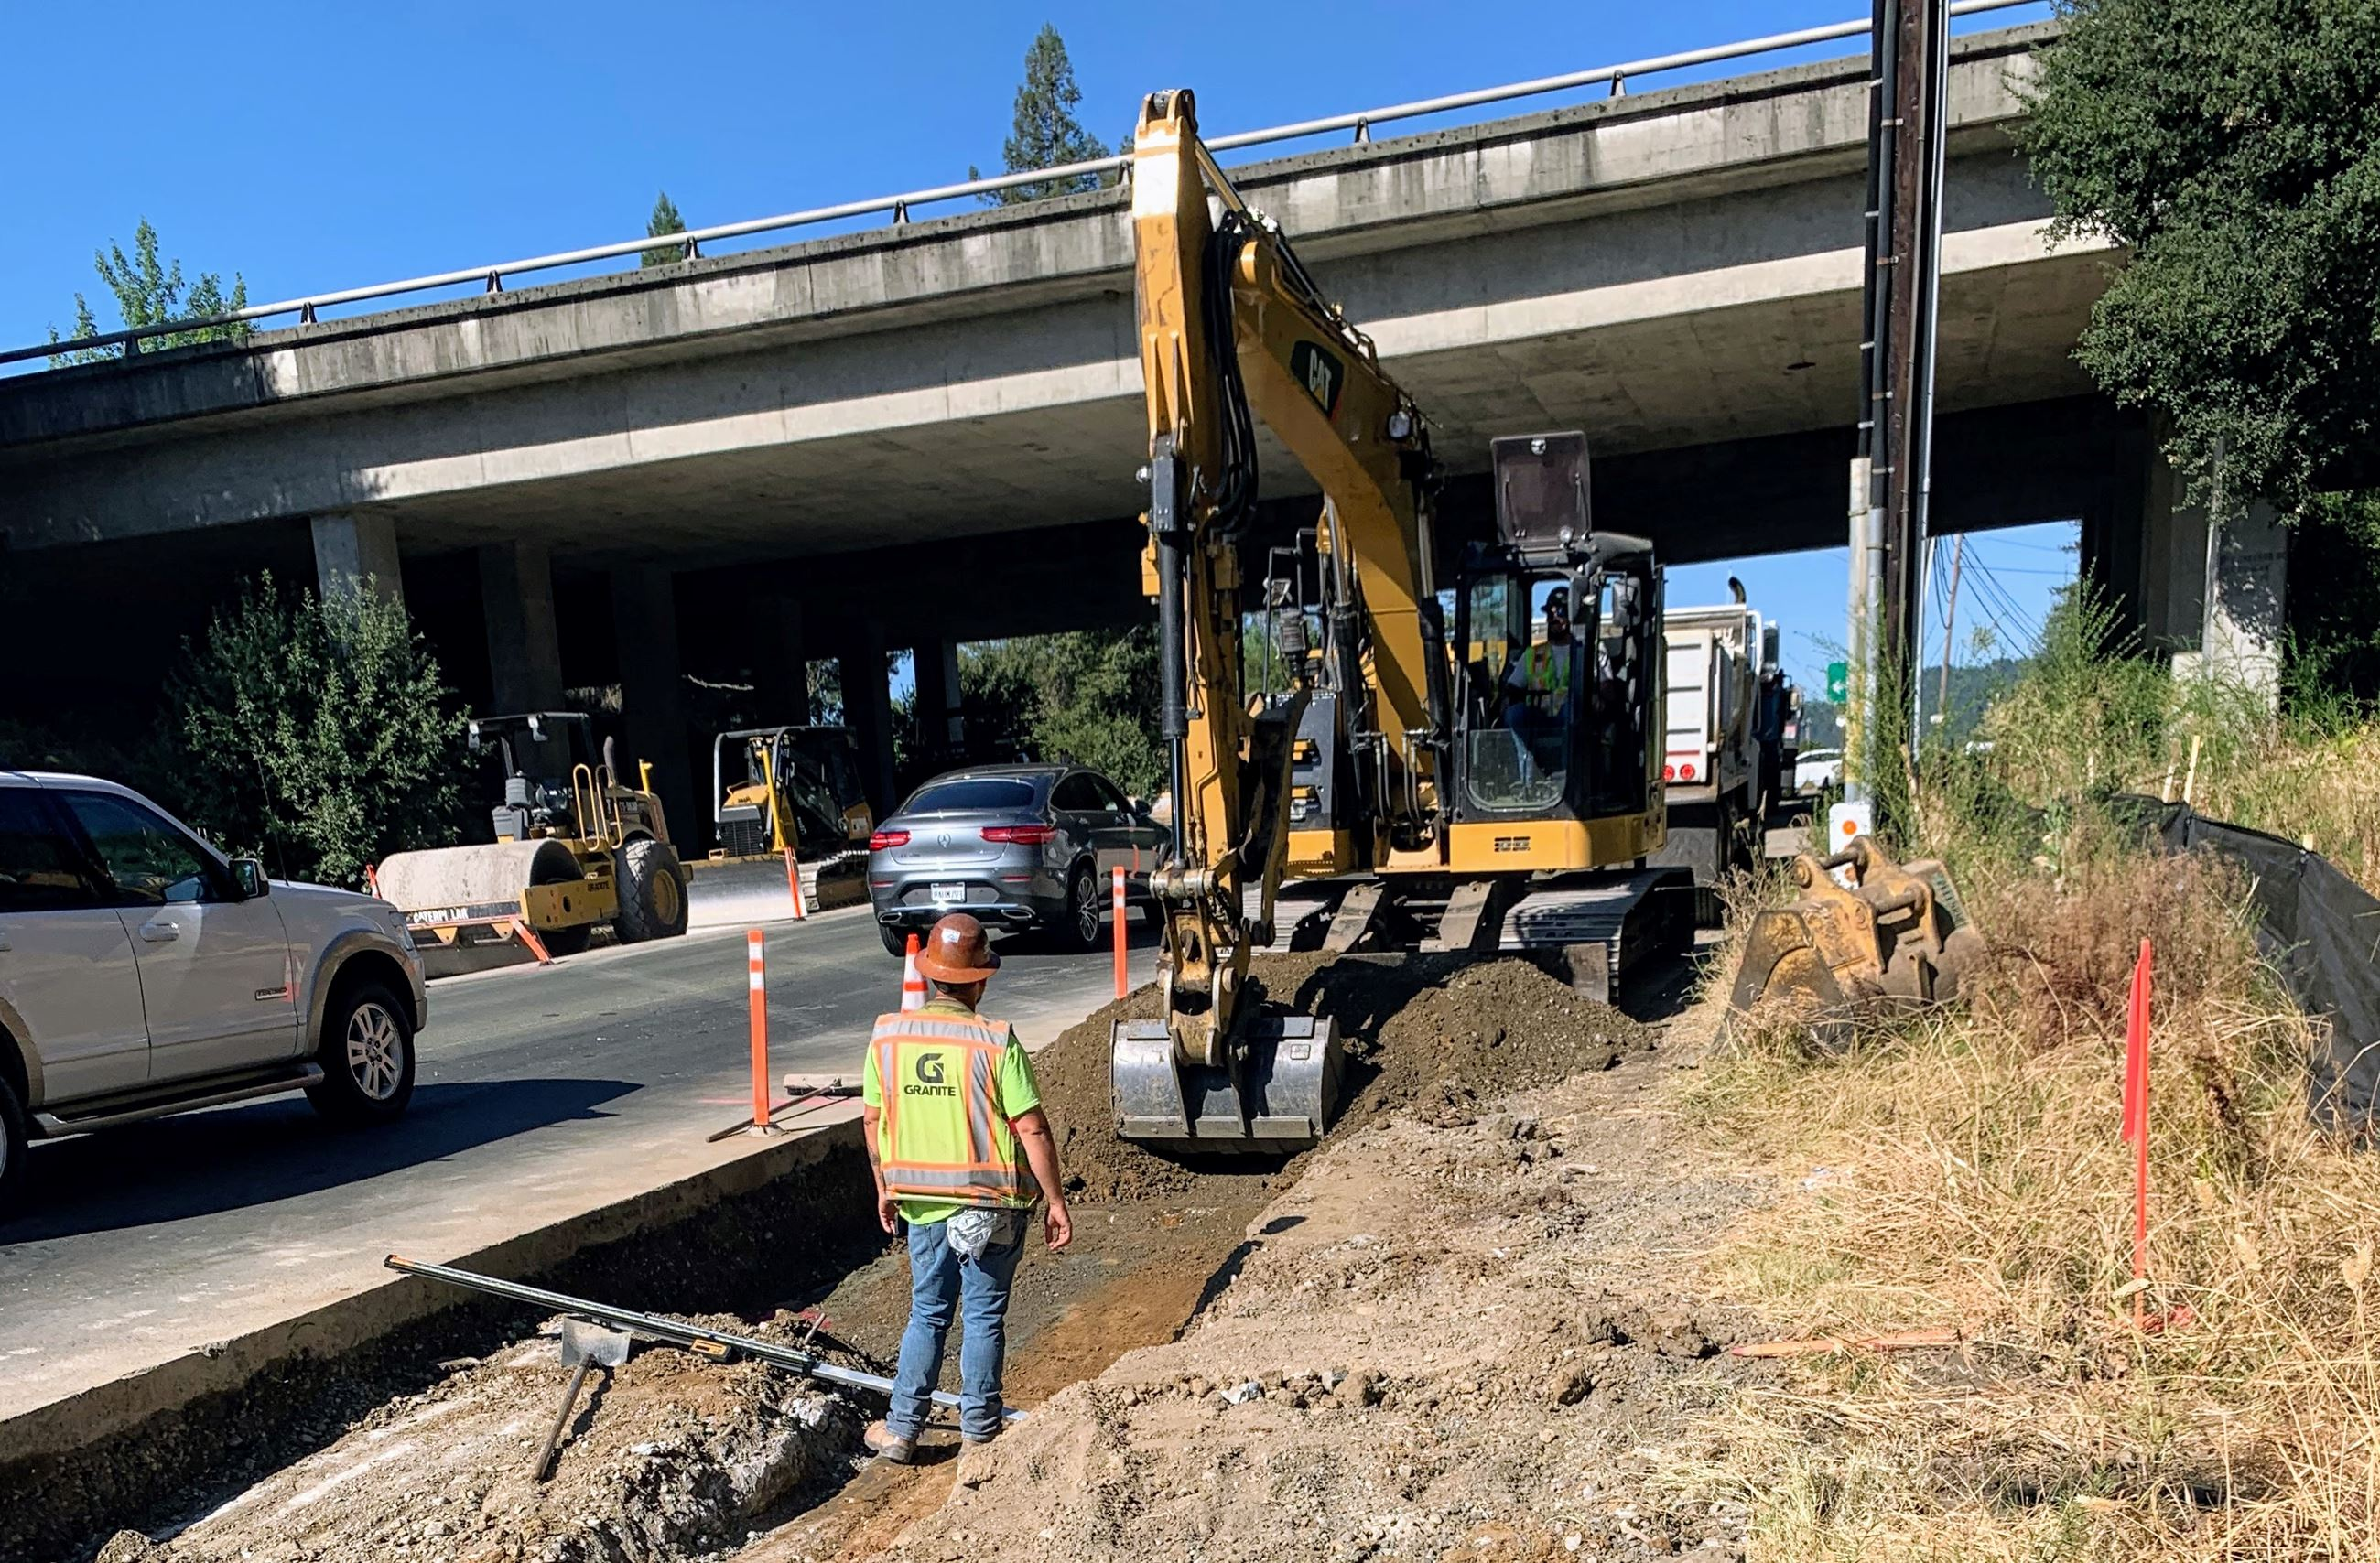 Construction work at Dry Creek Road  and U.S. 101 intersection